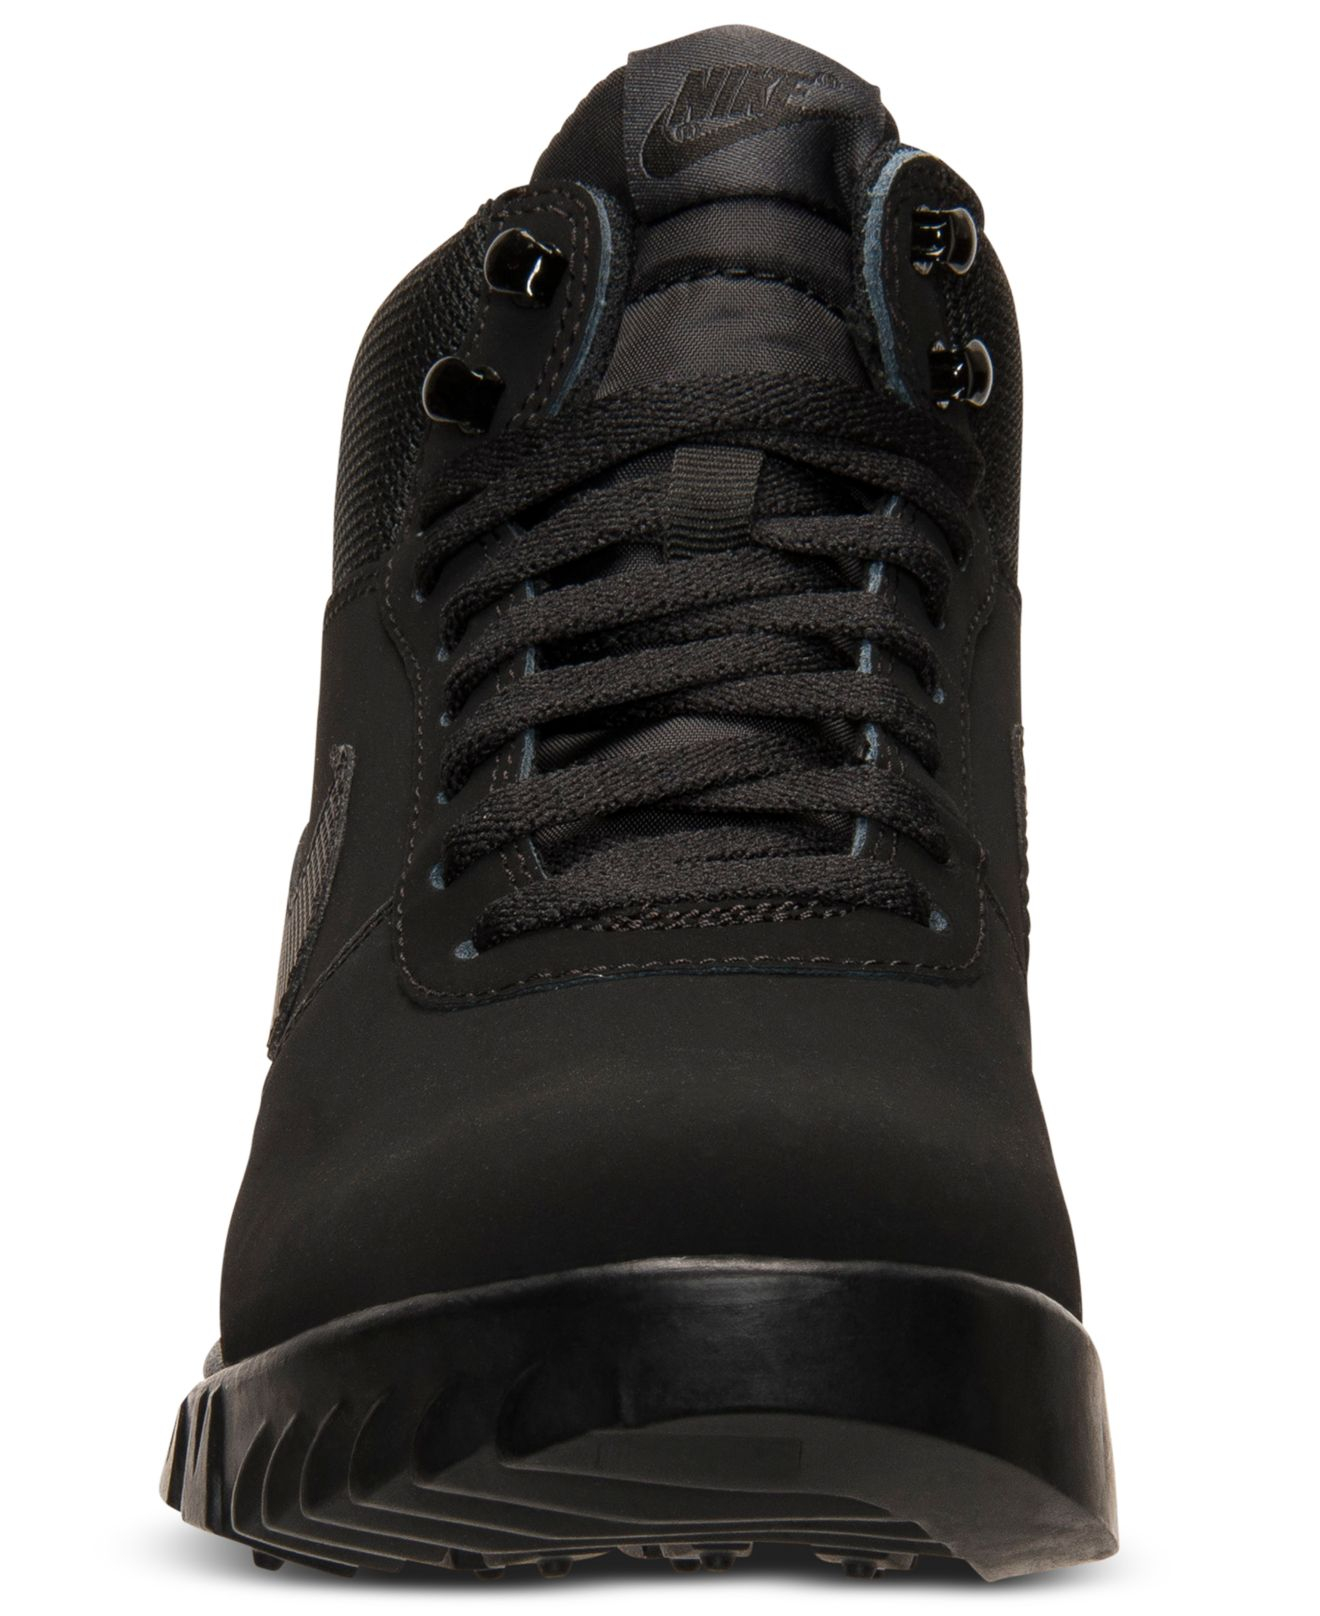 Nike Mens Hoodland Suede Boots From Finish Line In Black -7596